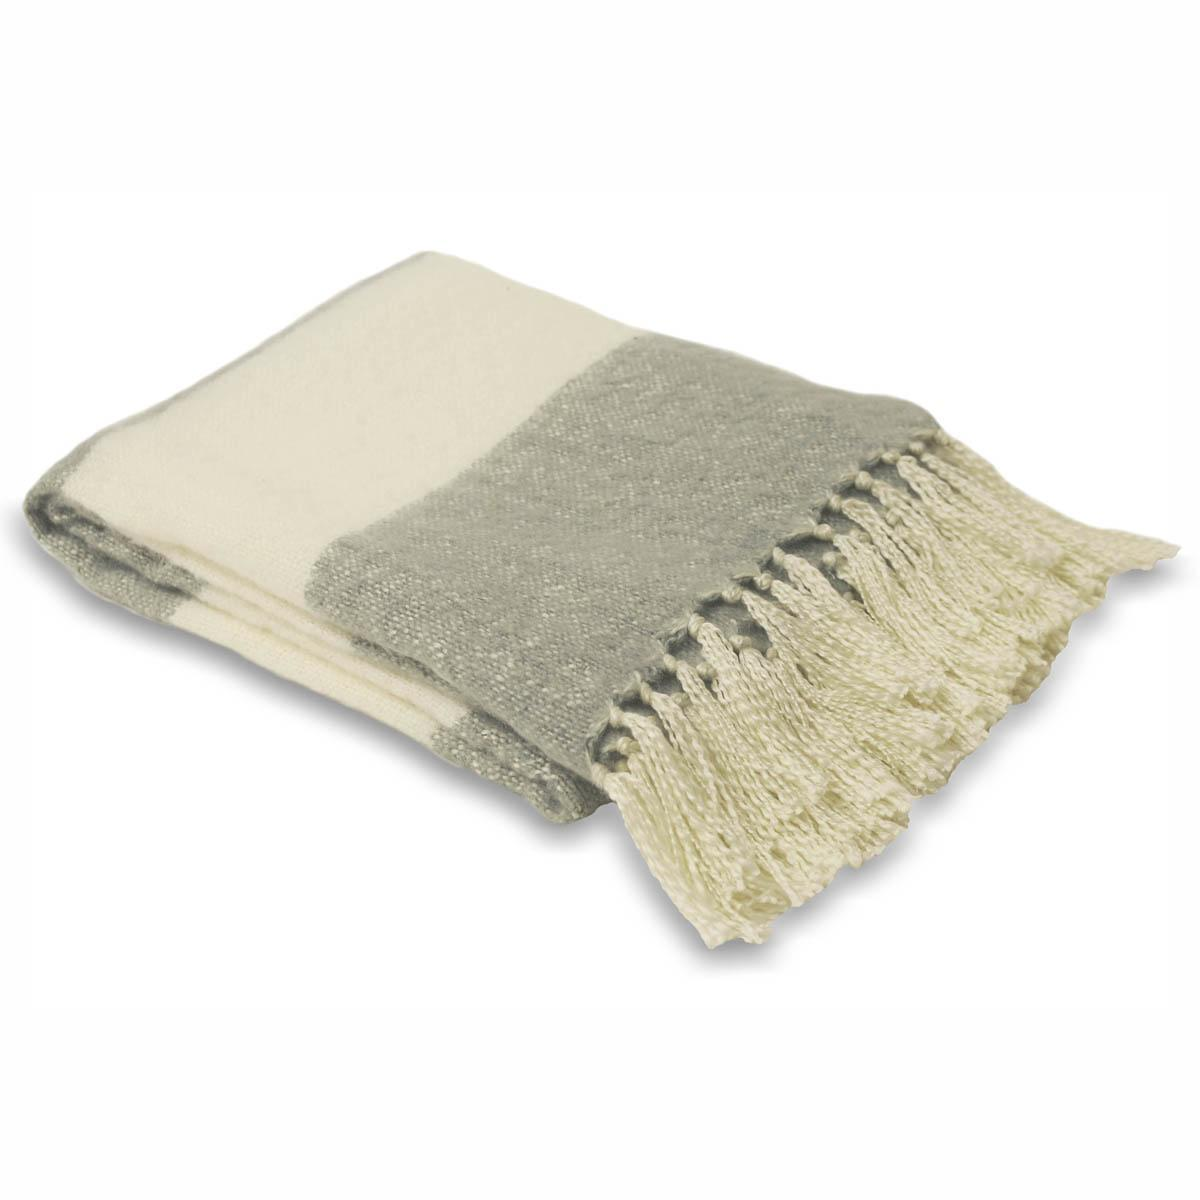 Riva Cushions And Throws Gloucester/Cotswolds Throw Dove Grey Picture